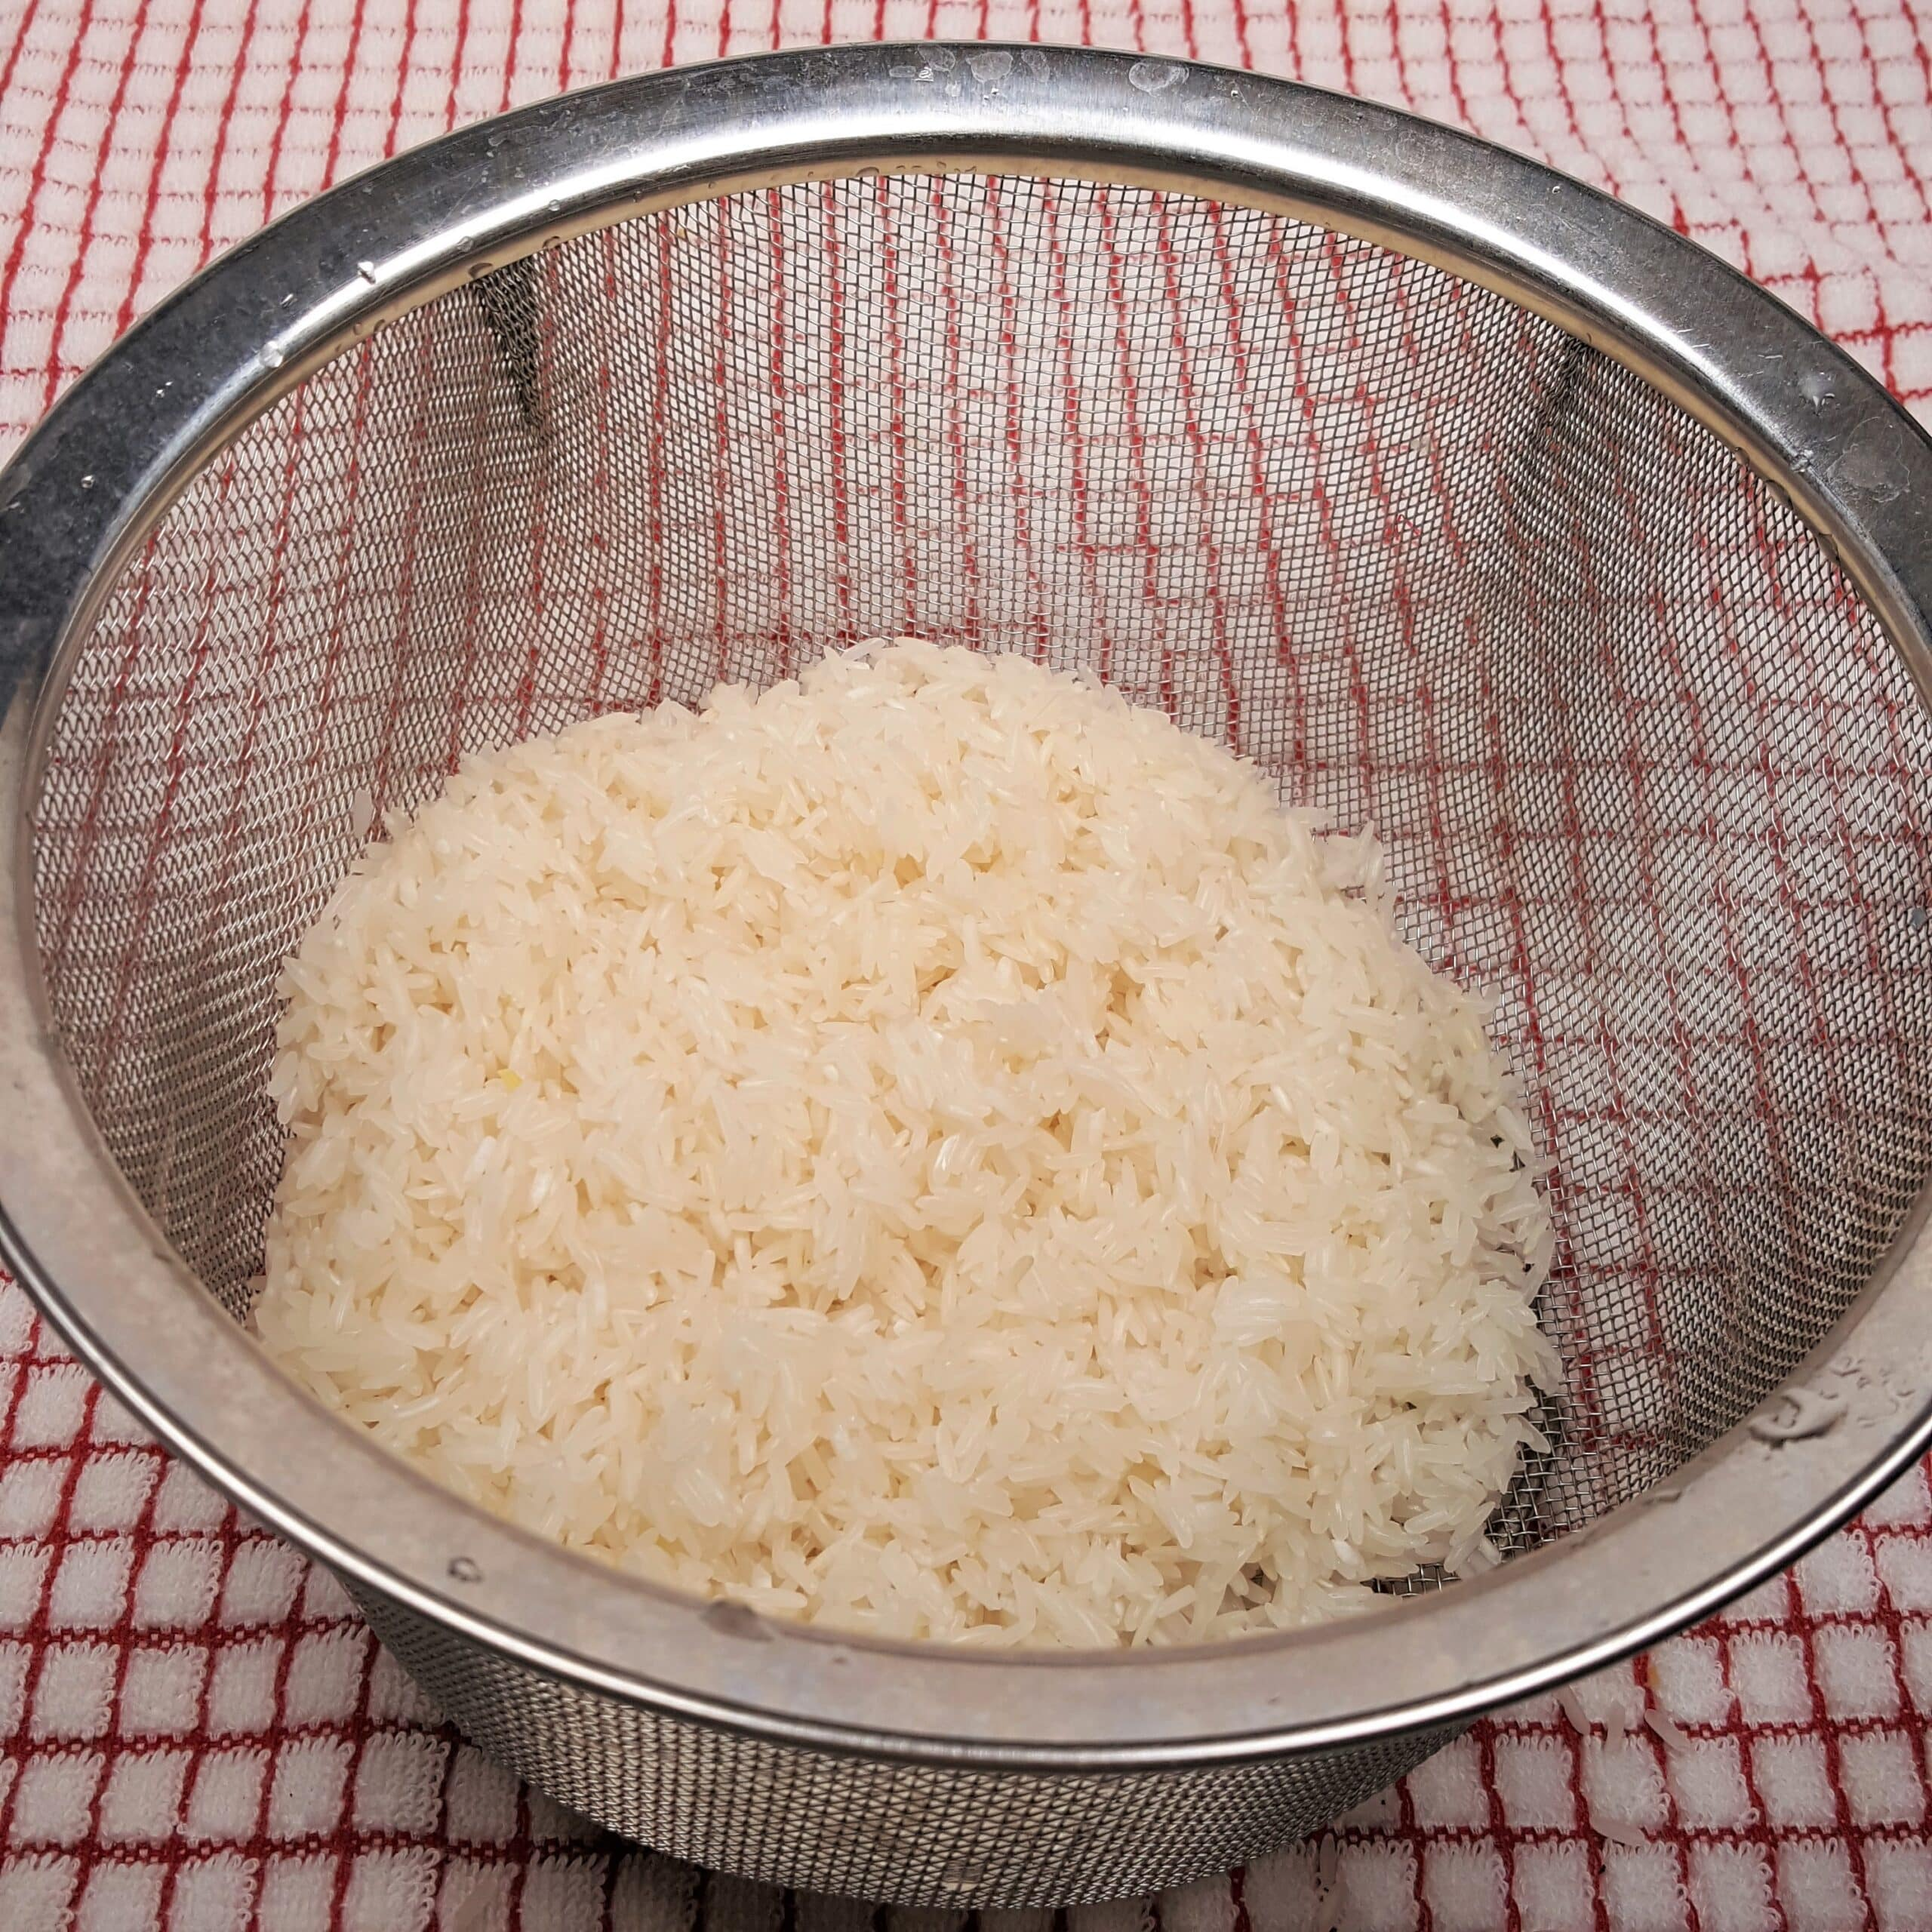 Rinse the Rice in a Colander